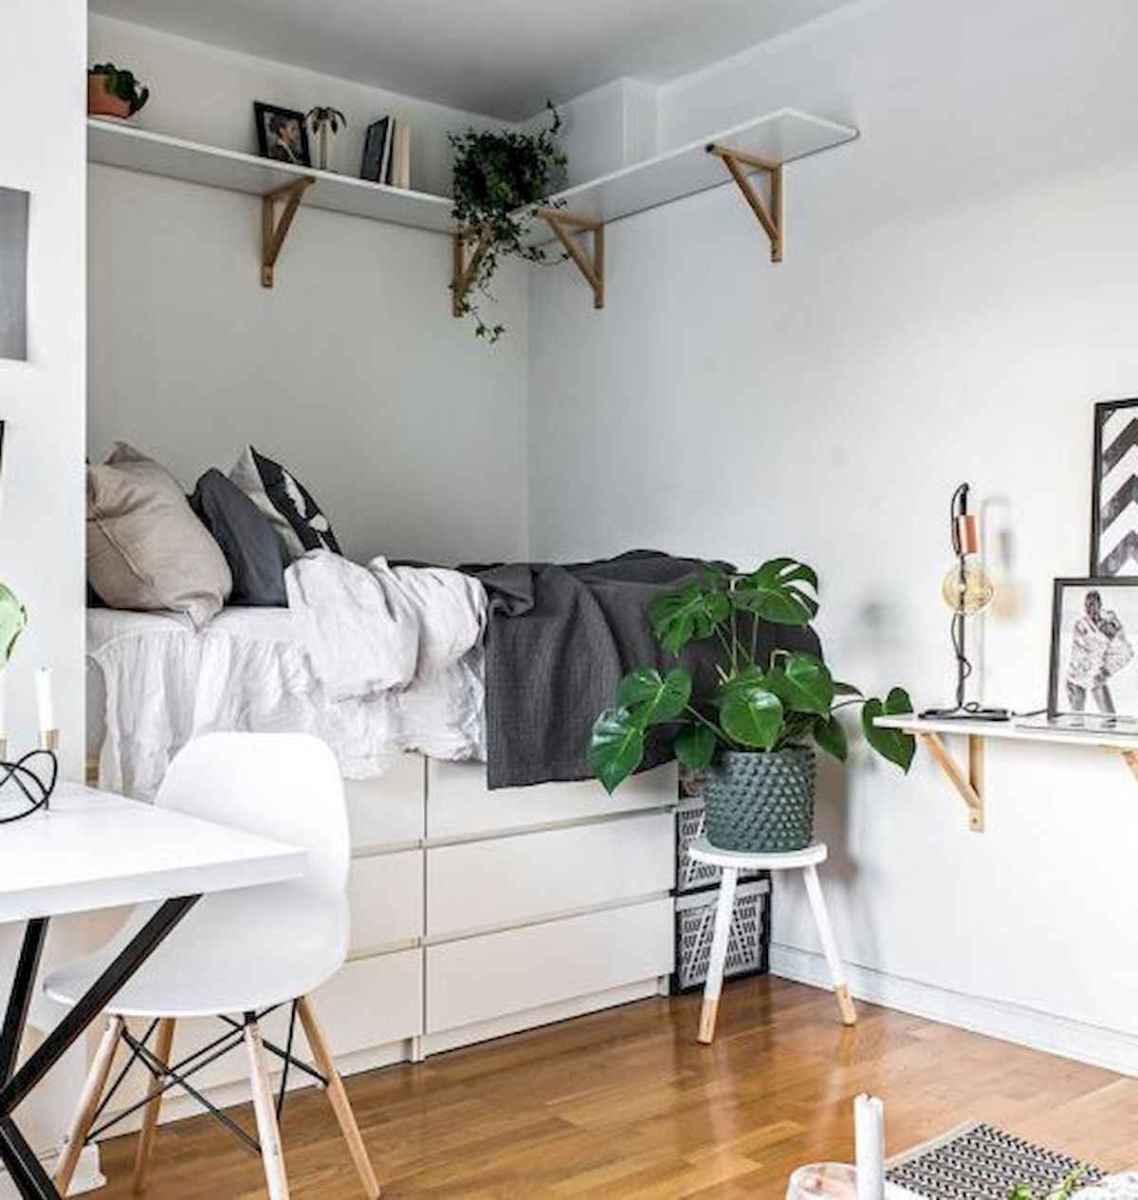 50 Stunning Small Apartment Bedroom Design Ideas and Decor (44)